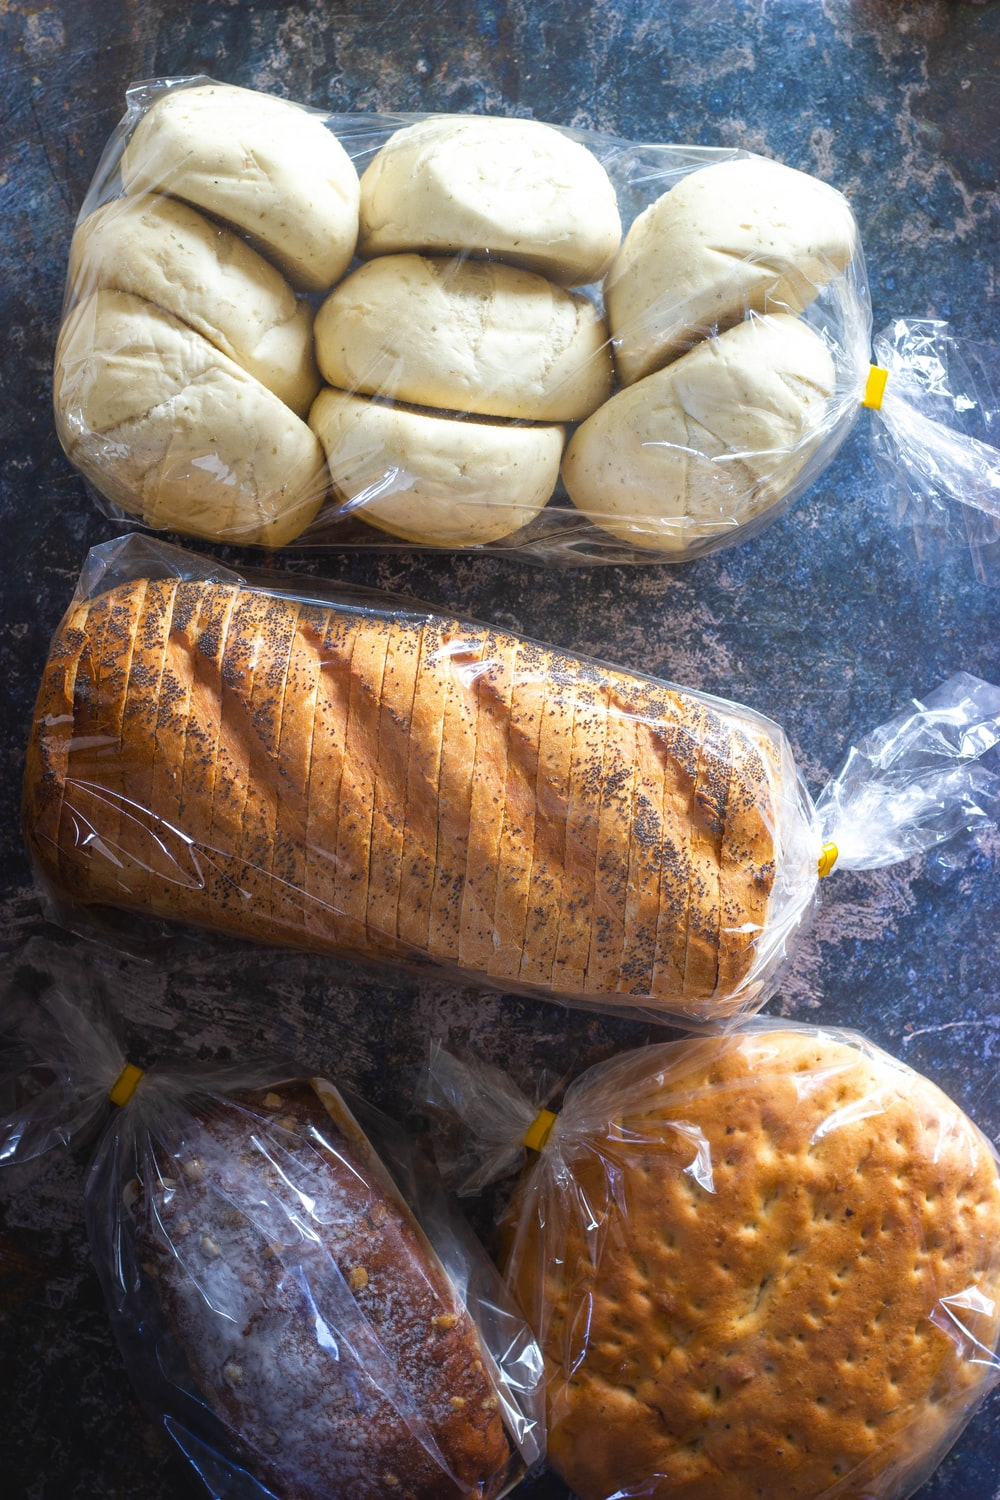 brown bread in clear plastic pack